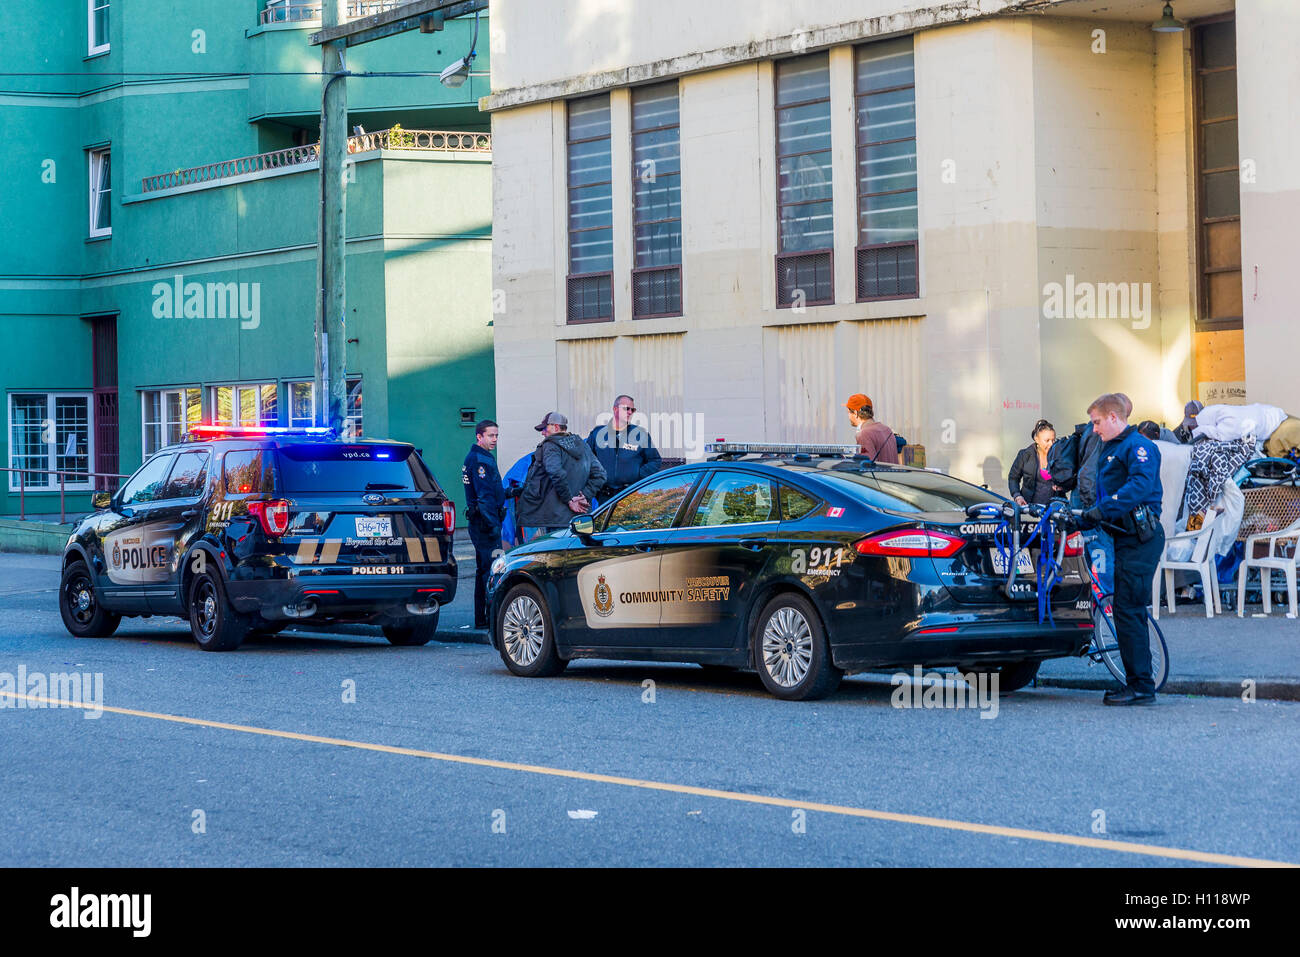 Police incident, DTES, Vancouver, British Columbia, Canada, - Stock Image